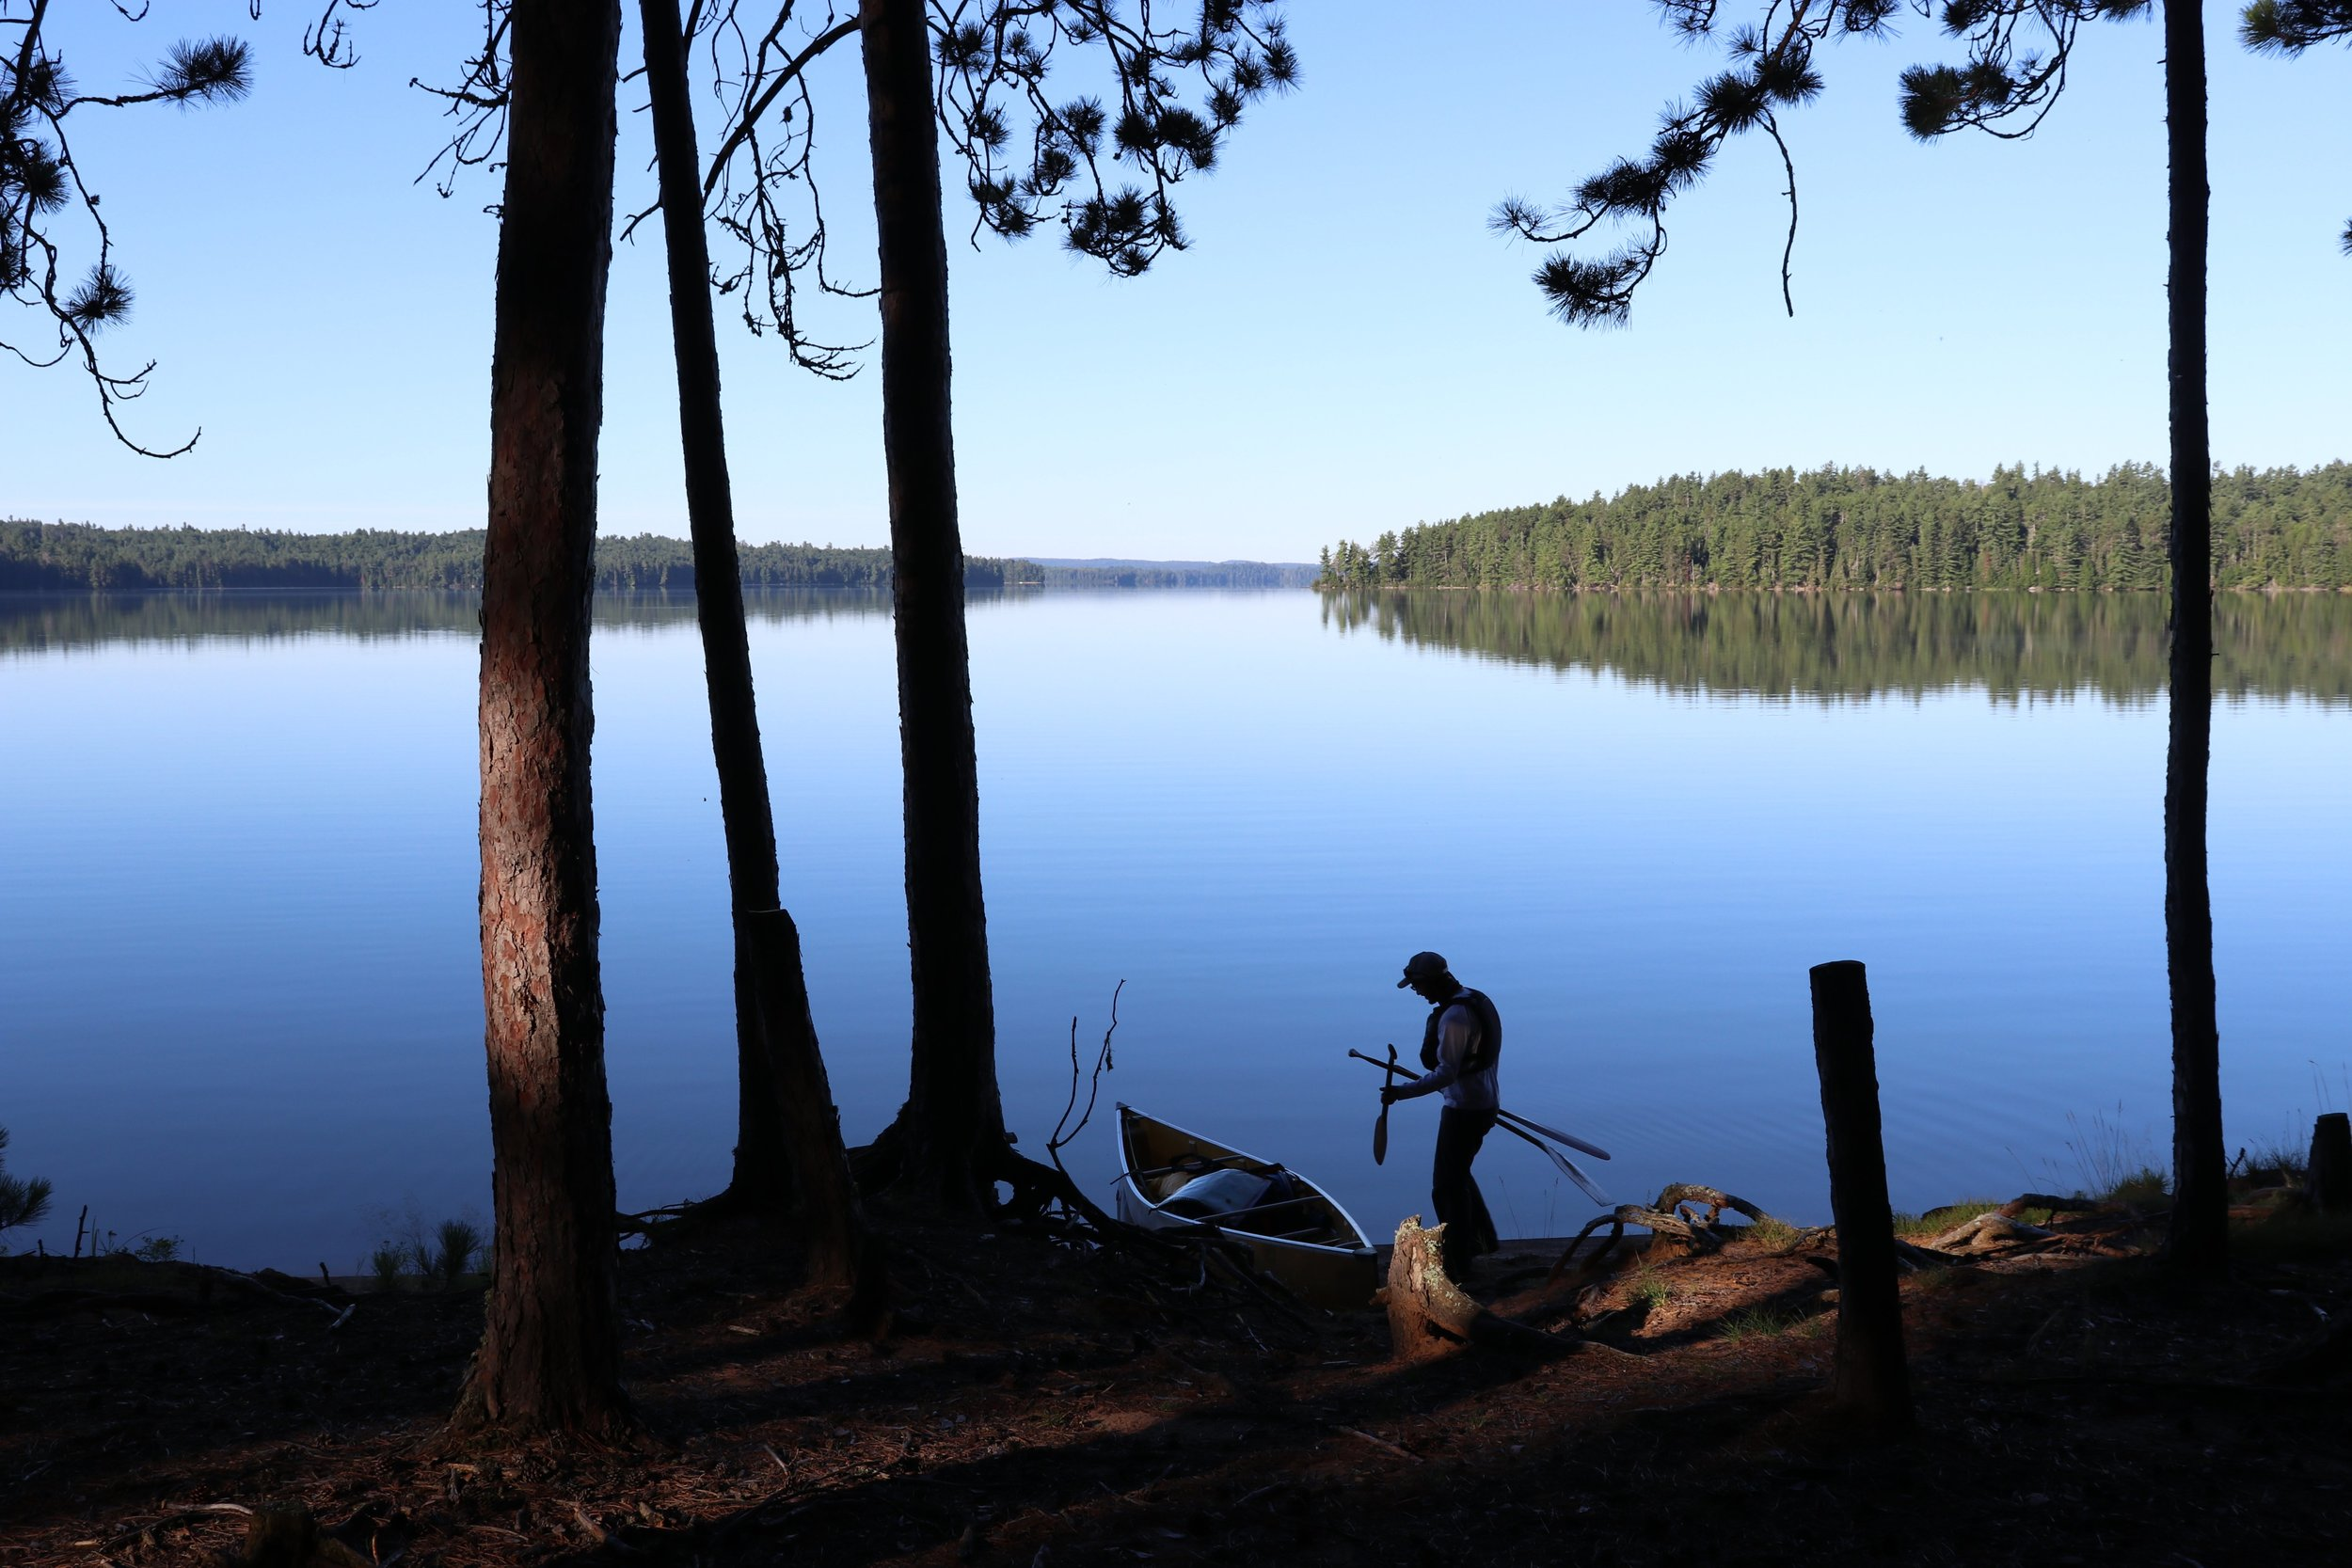 Arriving at the north end of Lake Opeongo